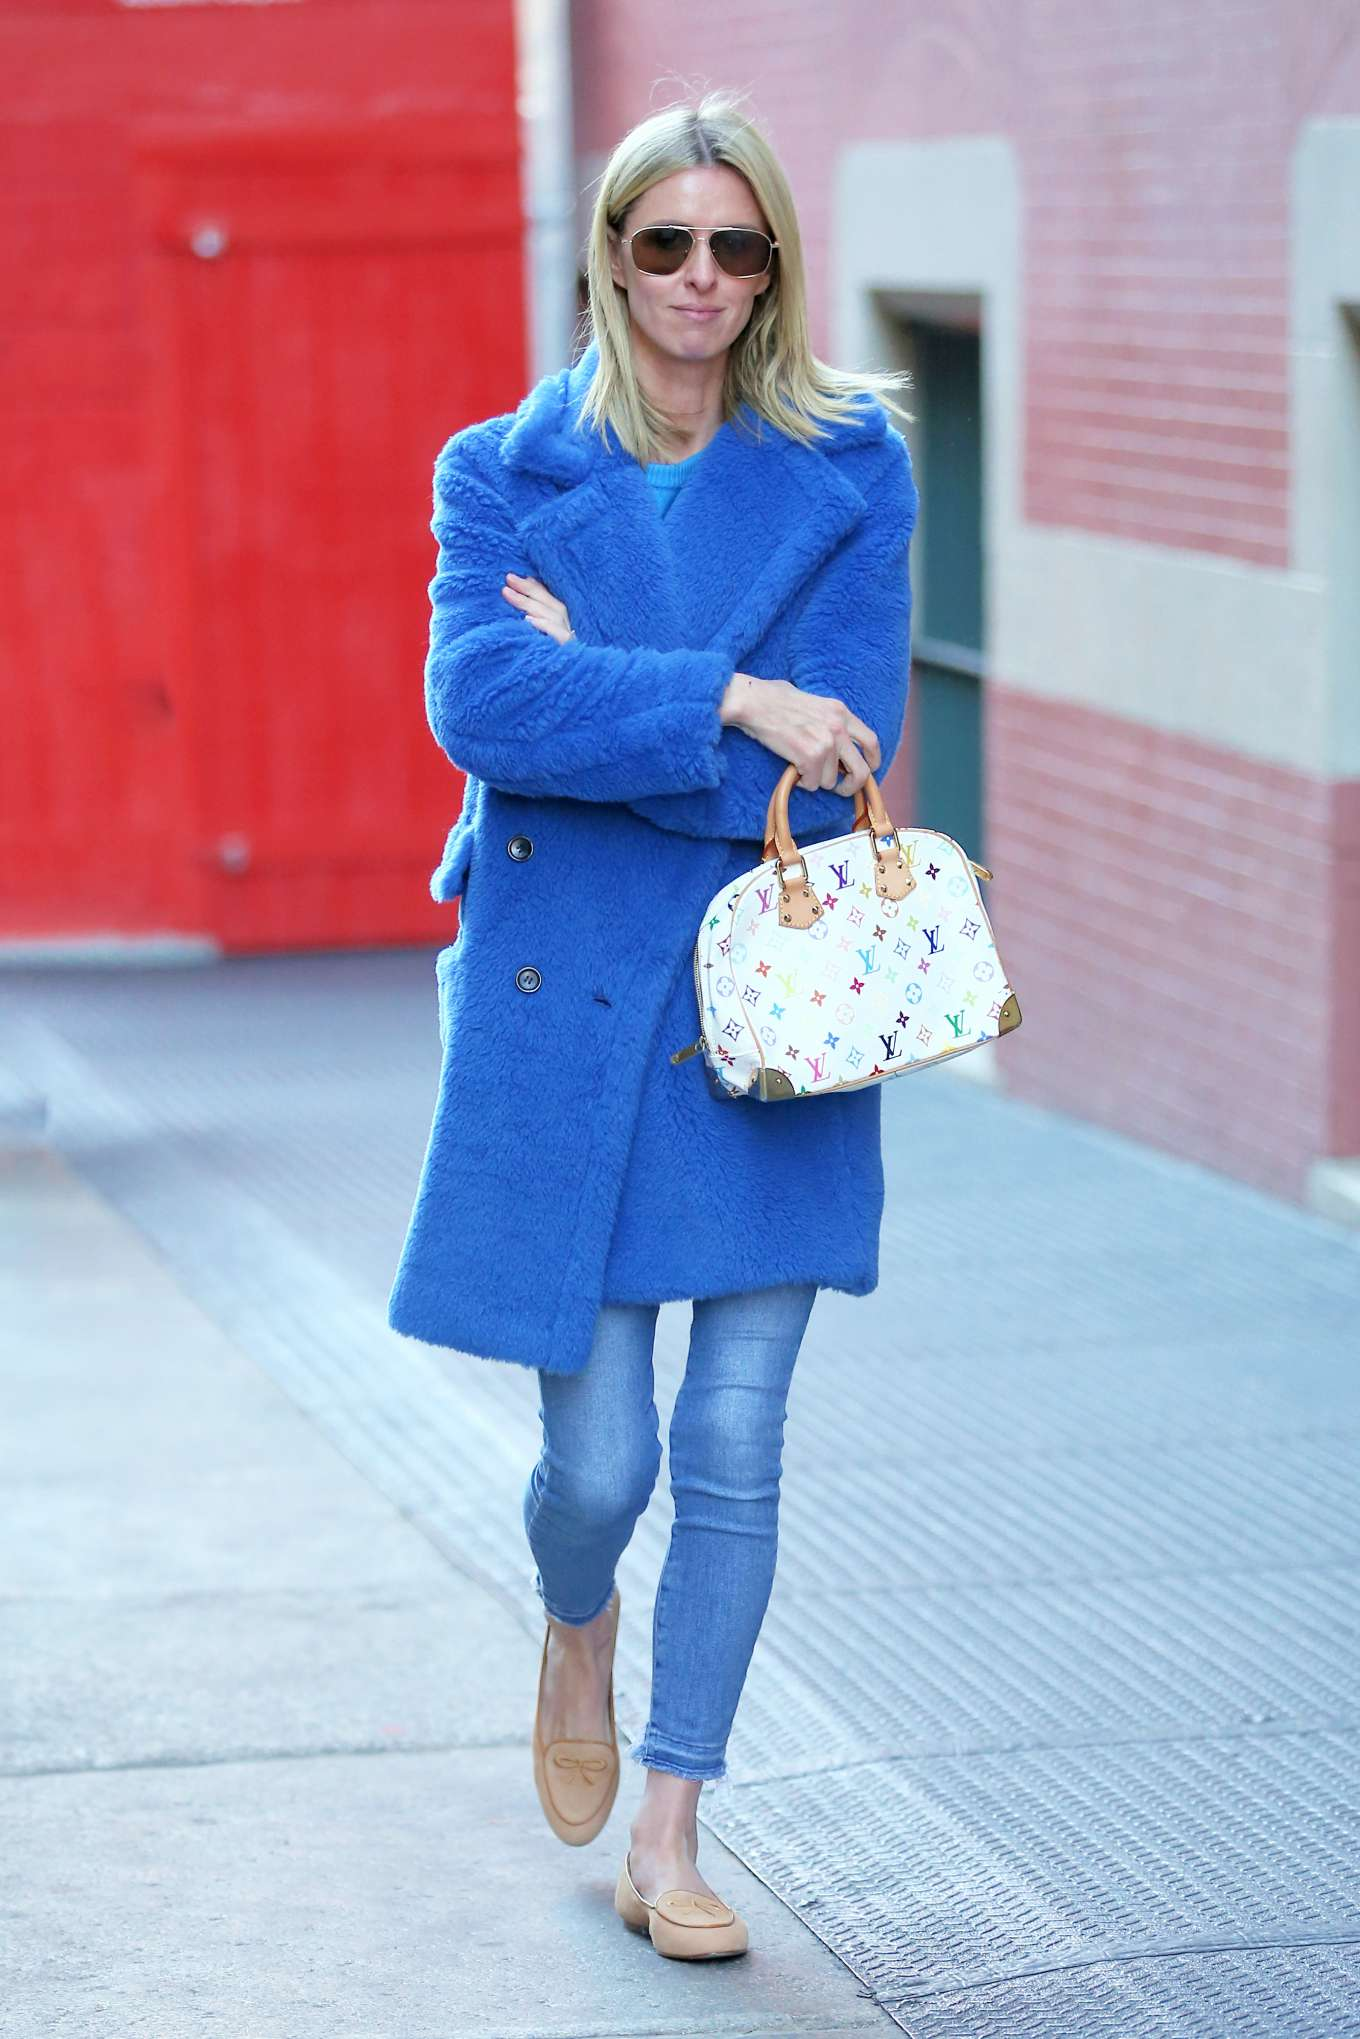 Nicky Hilton 2020 : Nicky Hilton in Blue Coat – Out and about in New York City-06